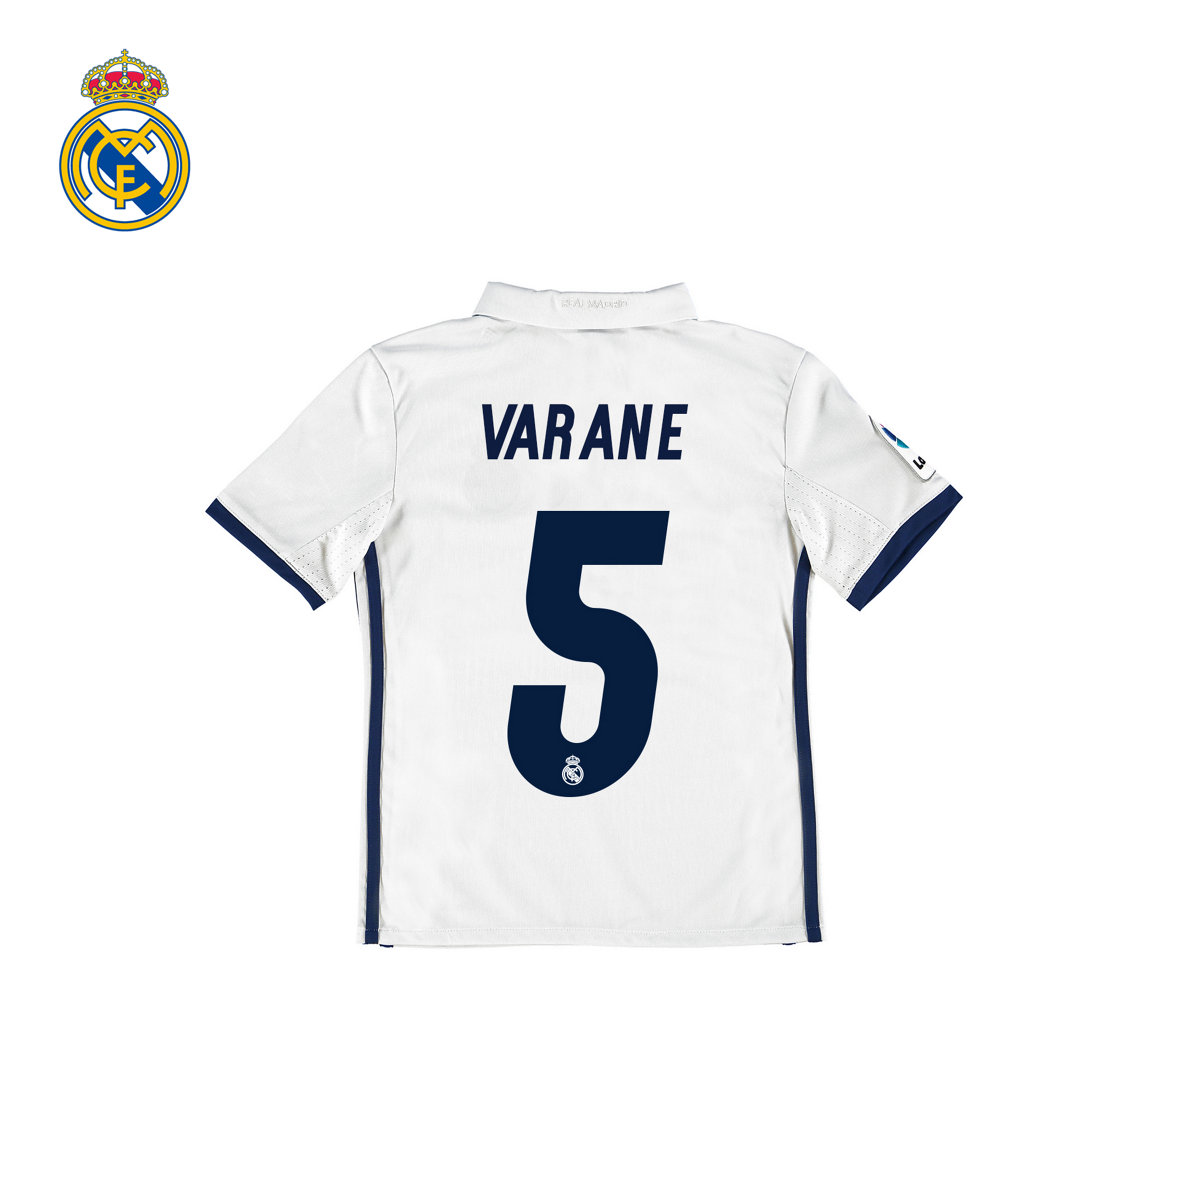 468352b90 Get Quotations ·  Youth  real madrid real madrid 16 17 season home jersey  short sleeve jersey